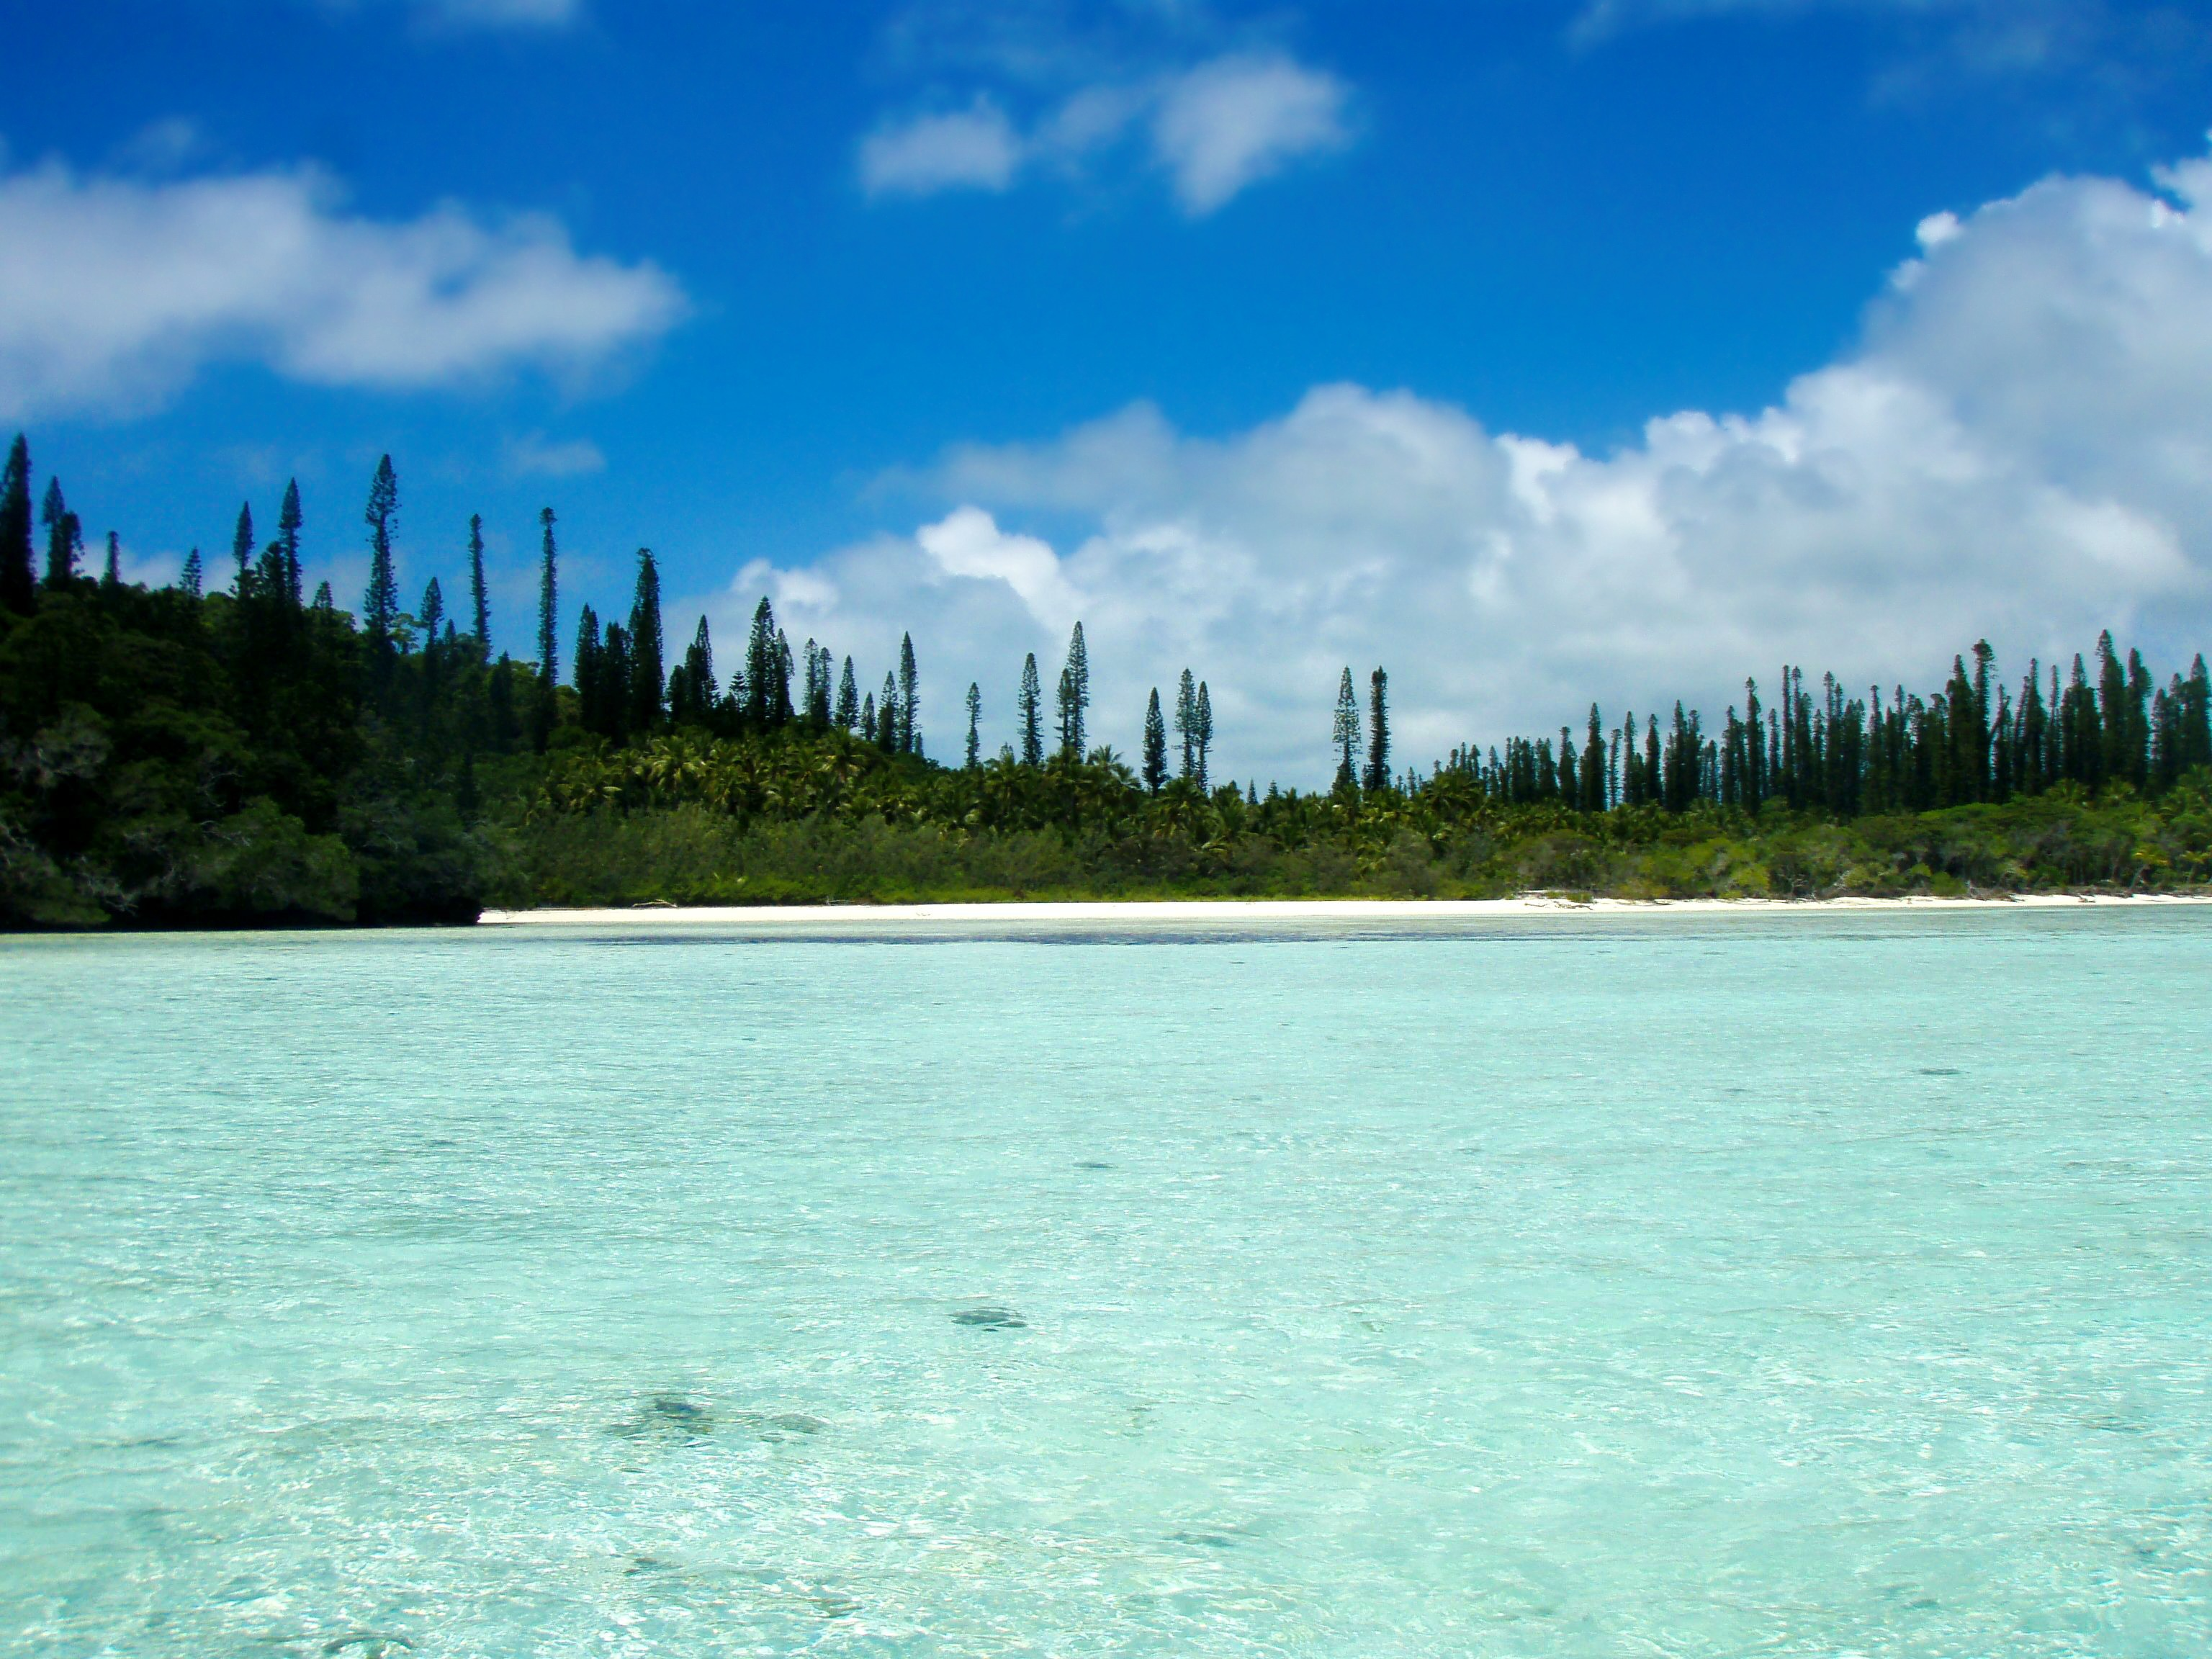 Isle of Palms, New Caledonia